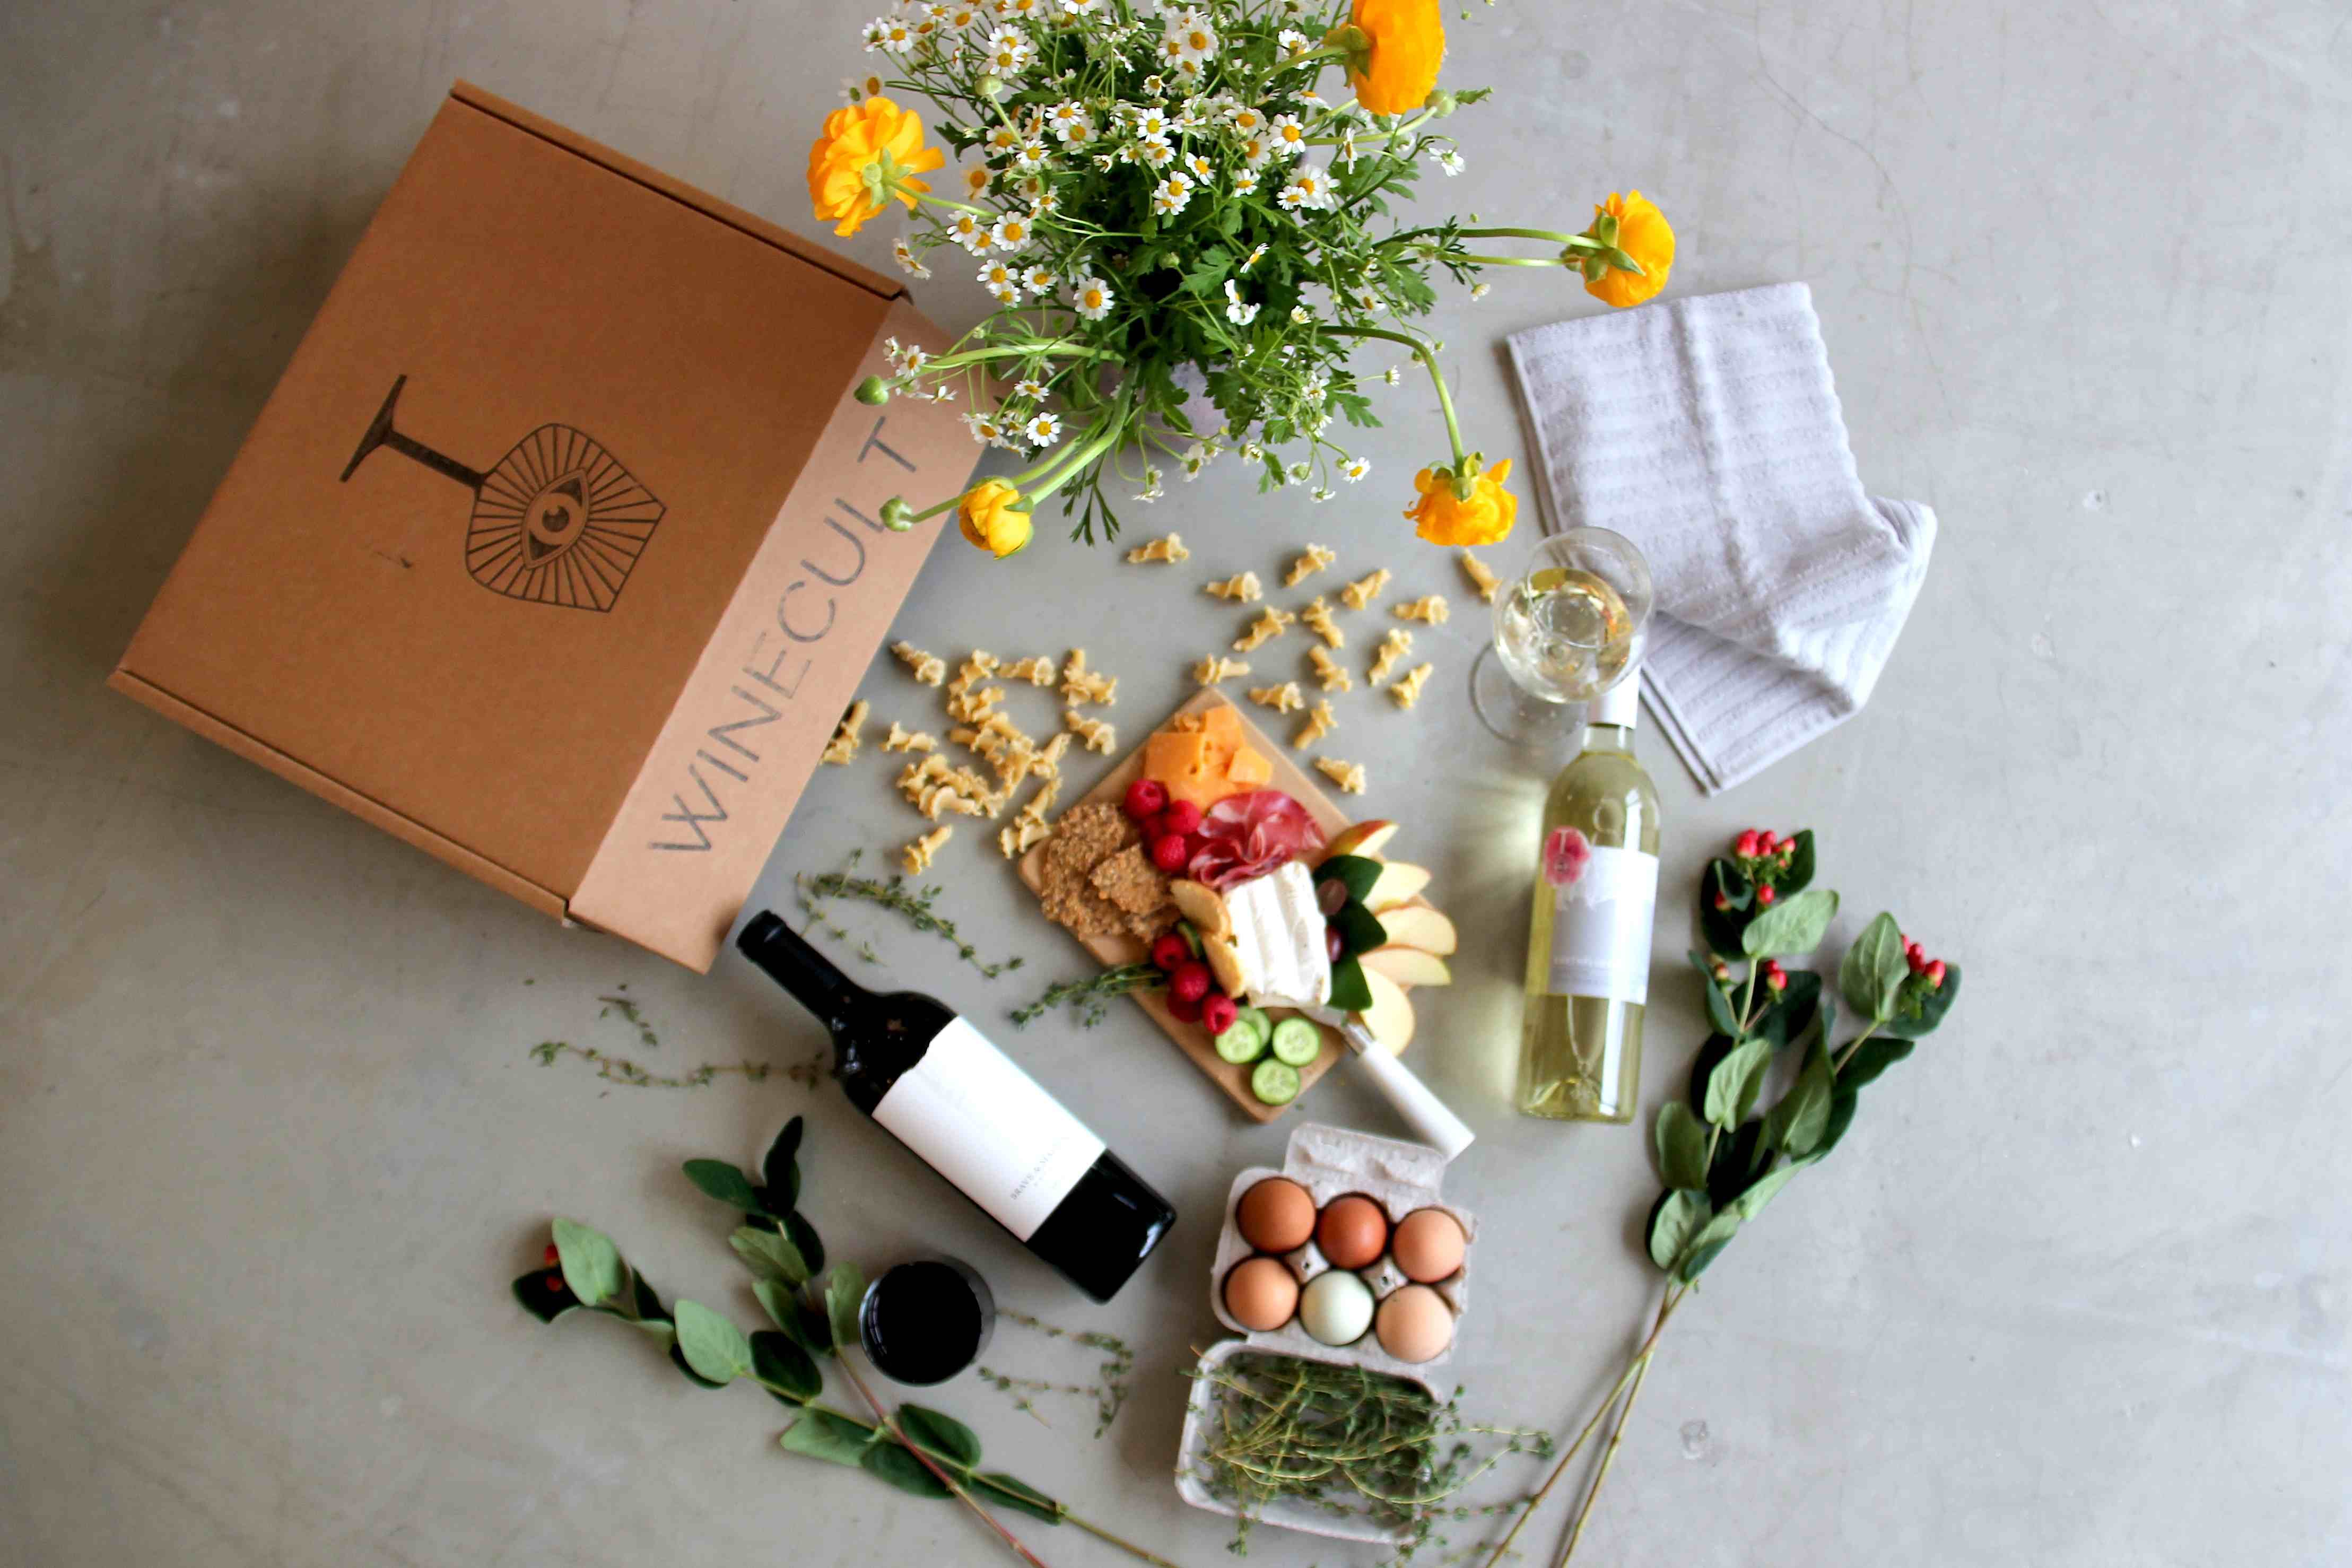 WINECULT club box with flowers, cheese board, wine, and picnic supplies